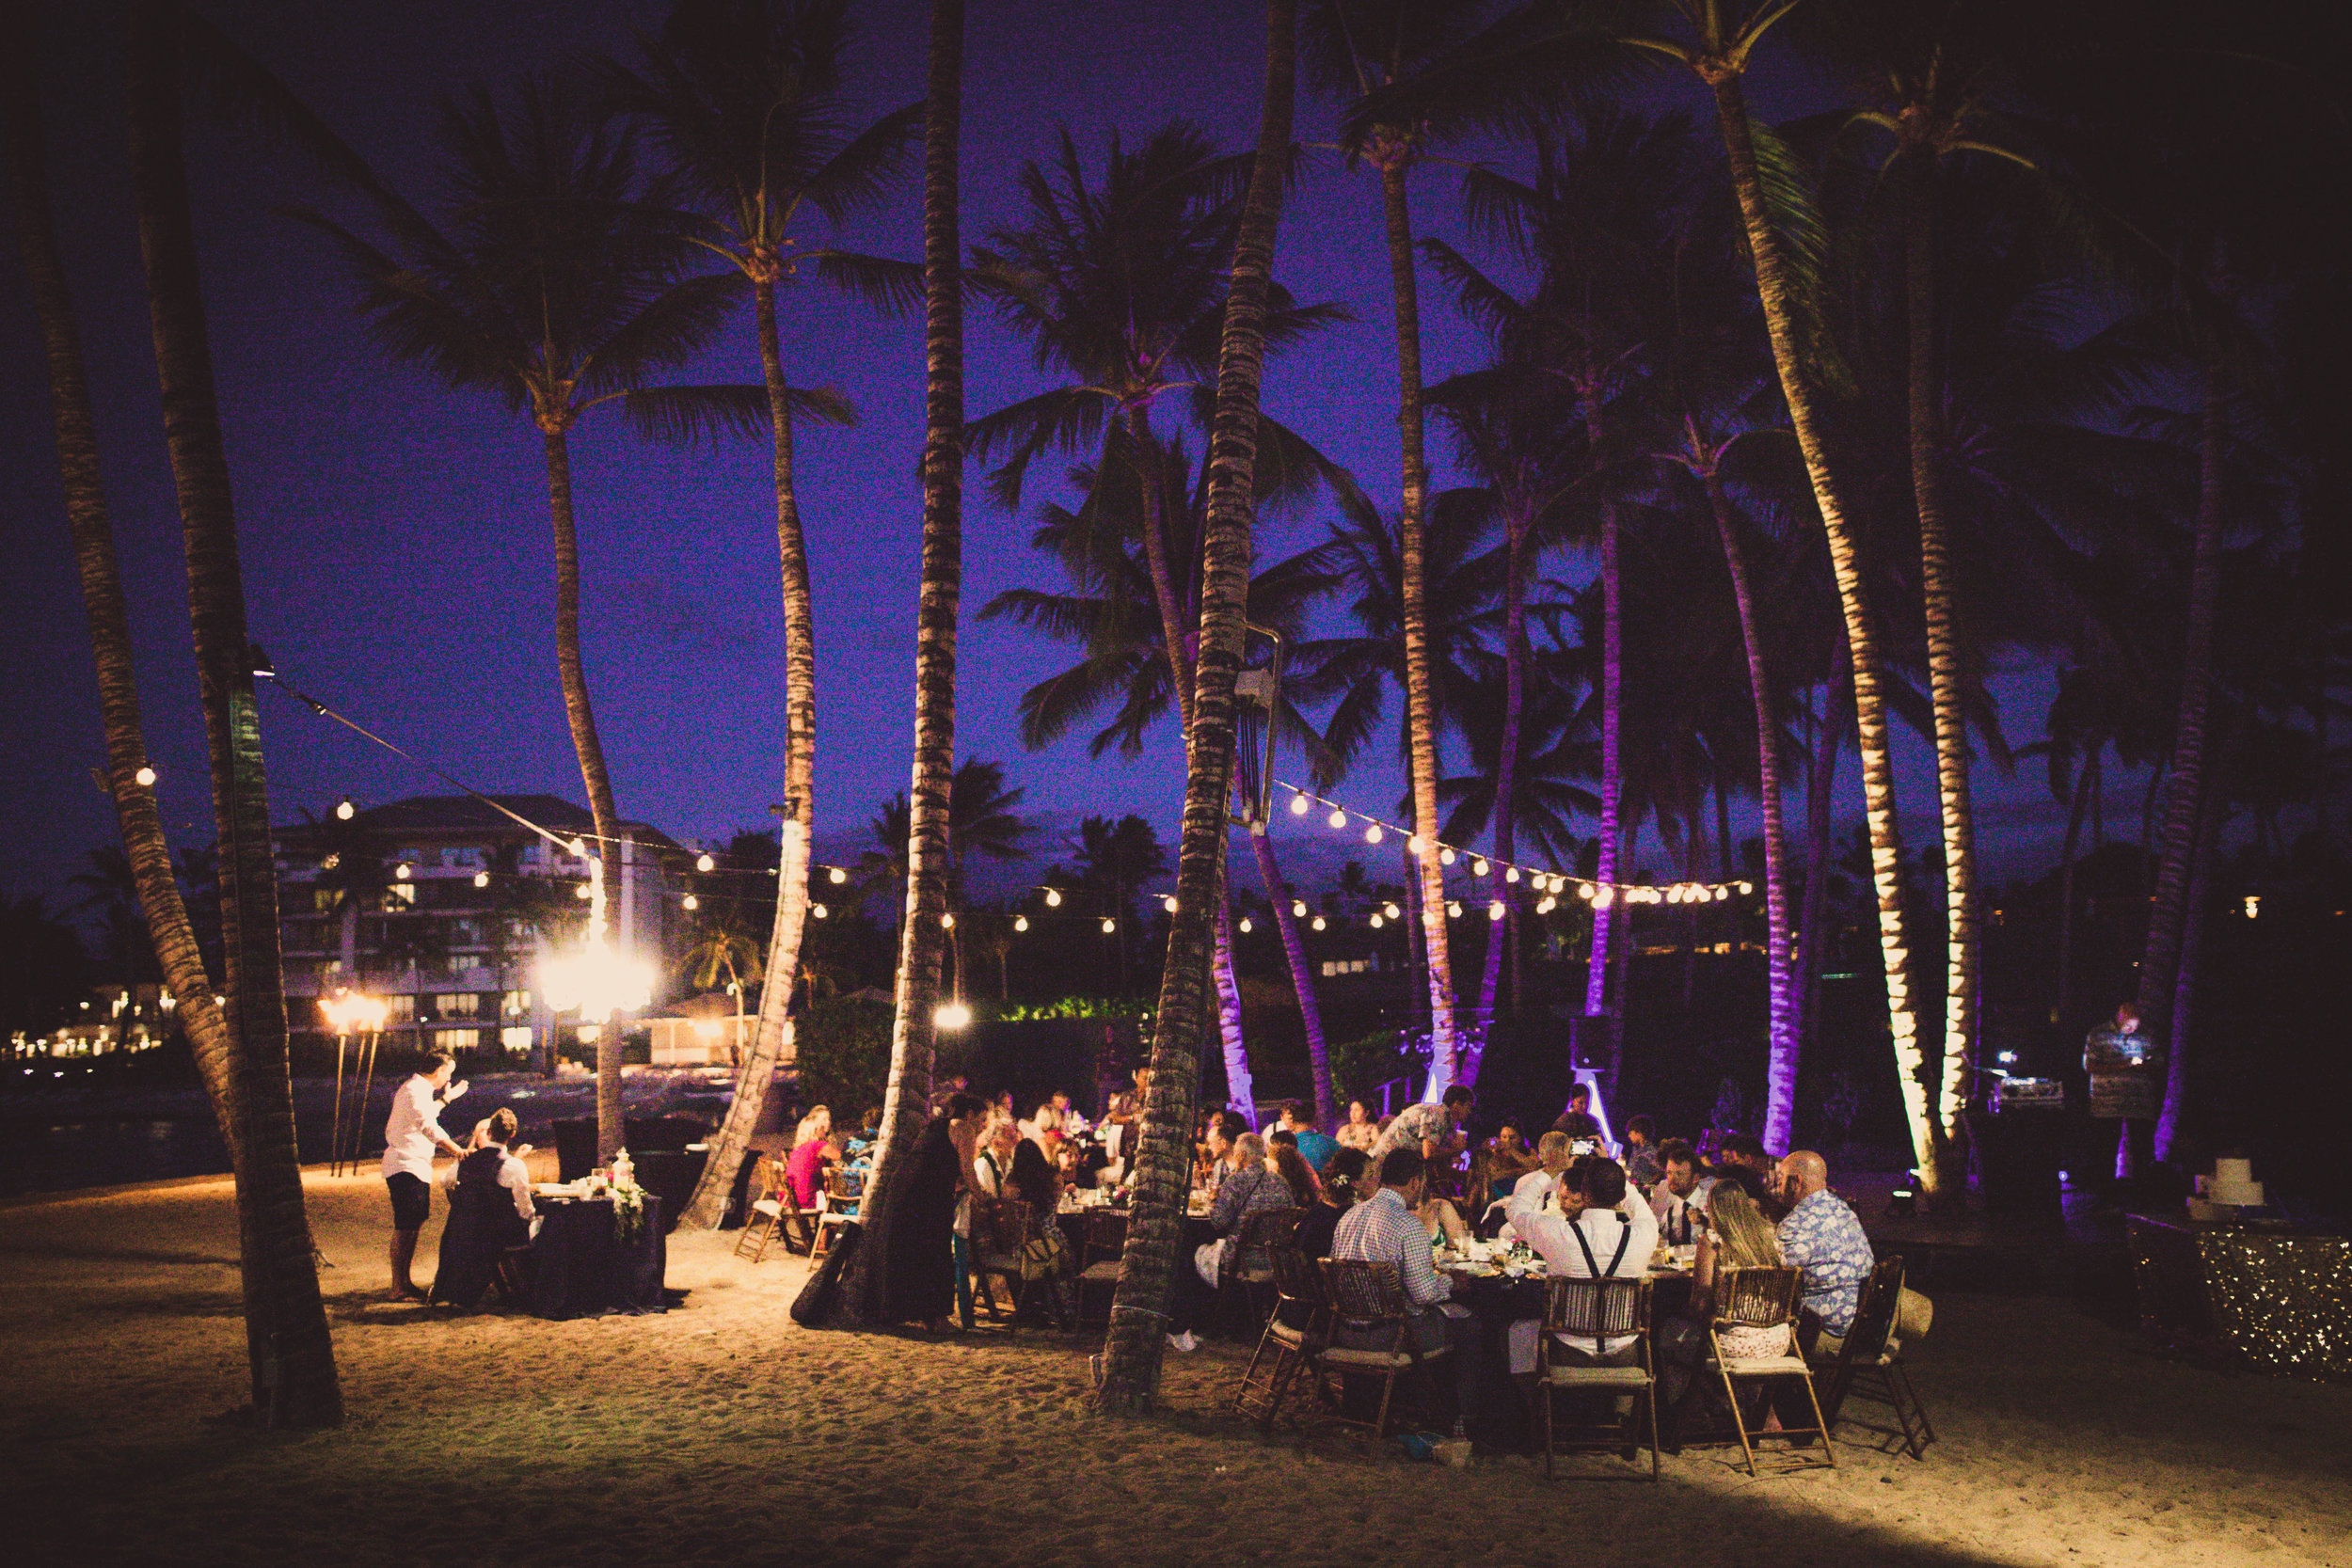 big island hawaii fairmont orchid beach wedding © kelilina photography 20170812192727-1.jpg